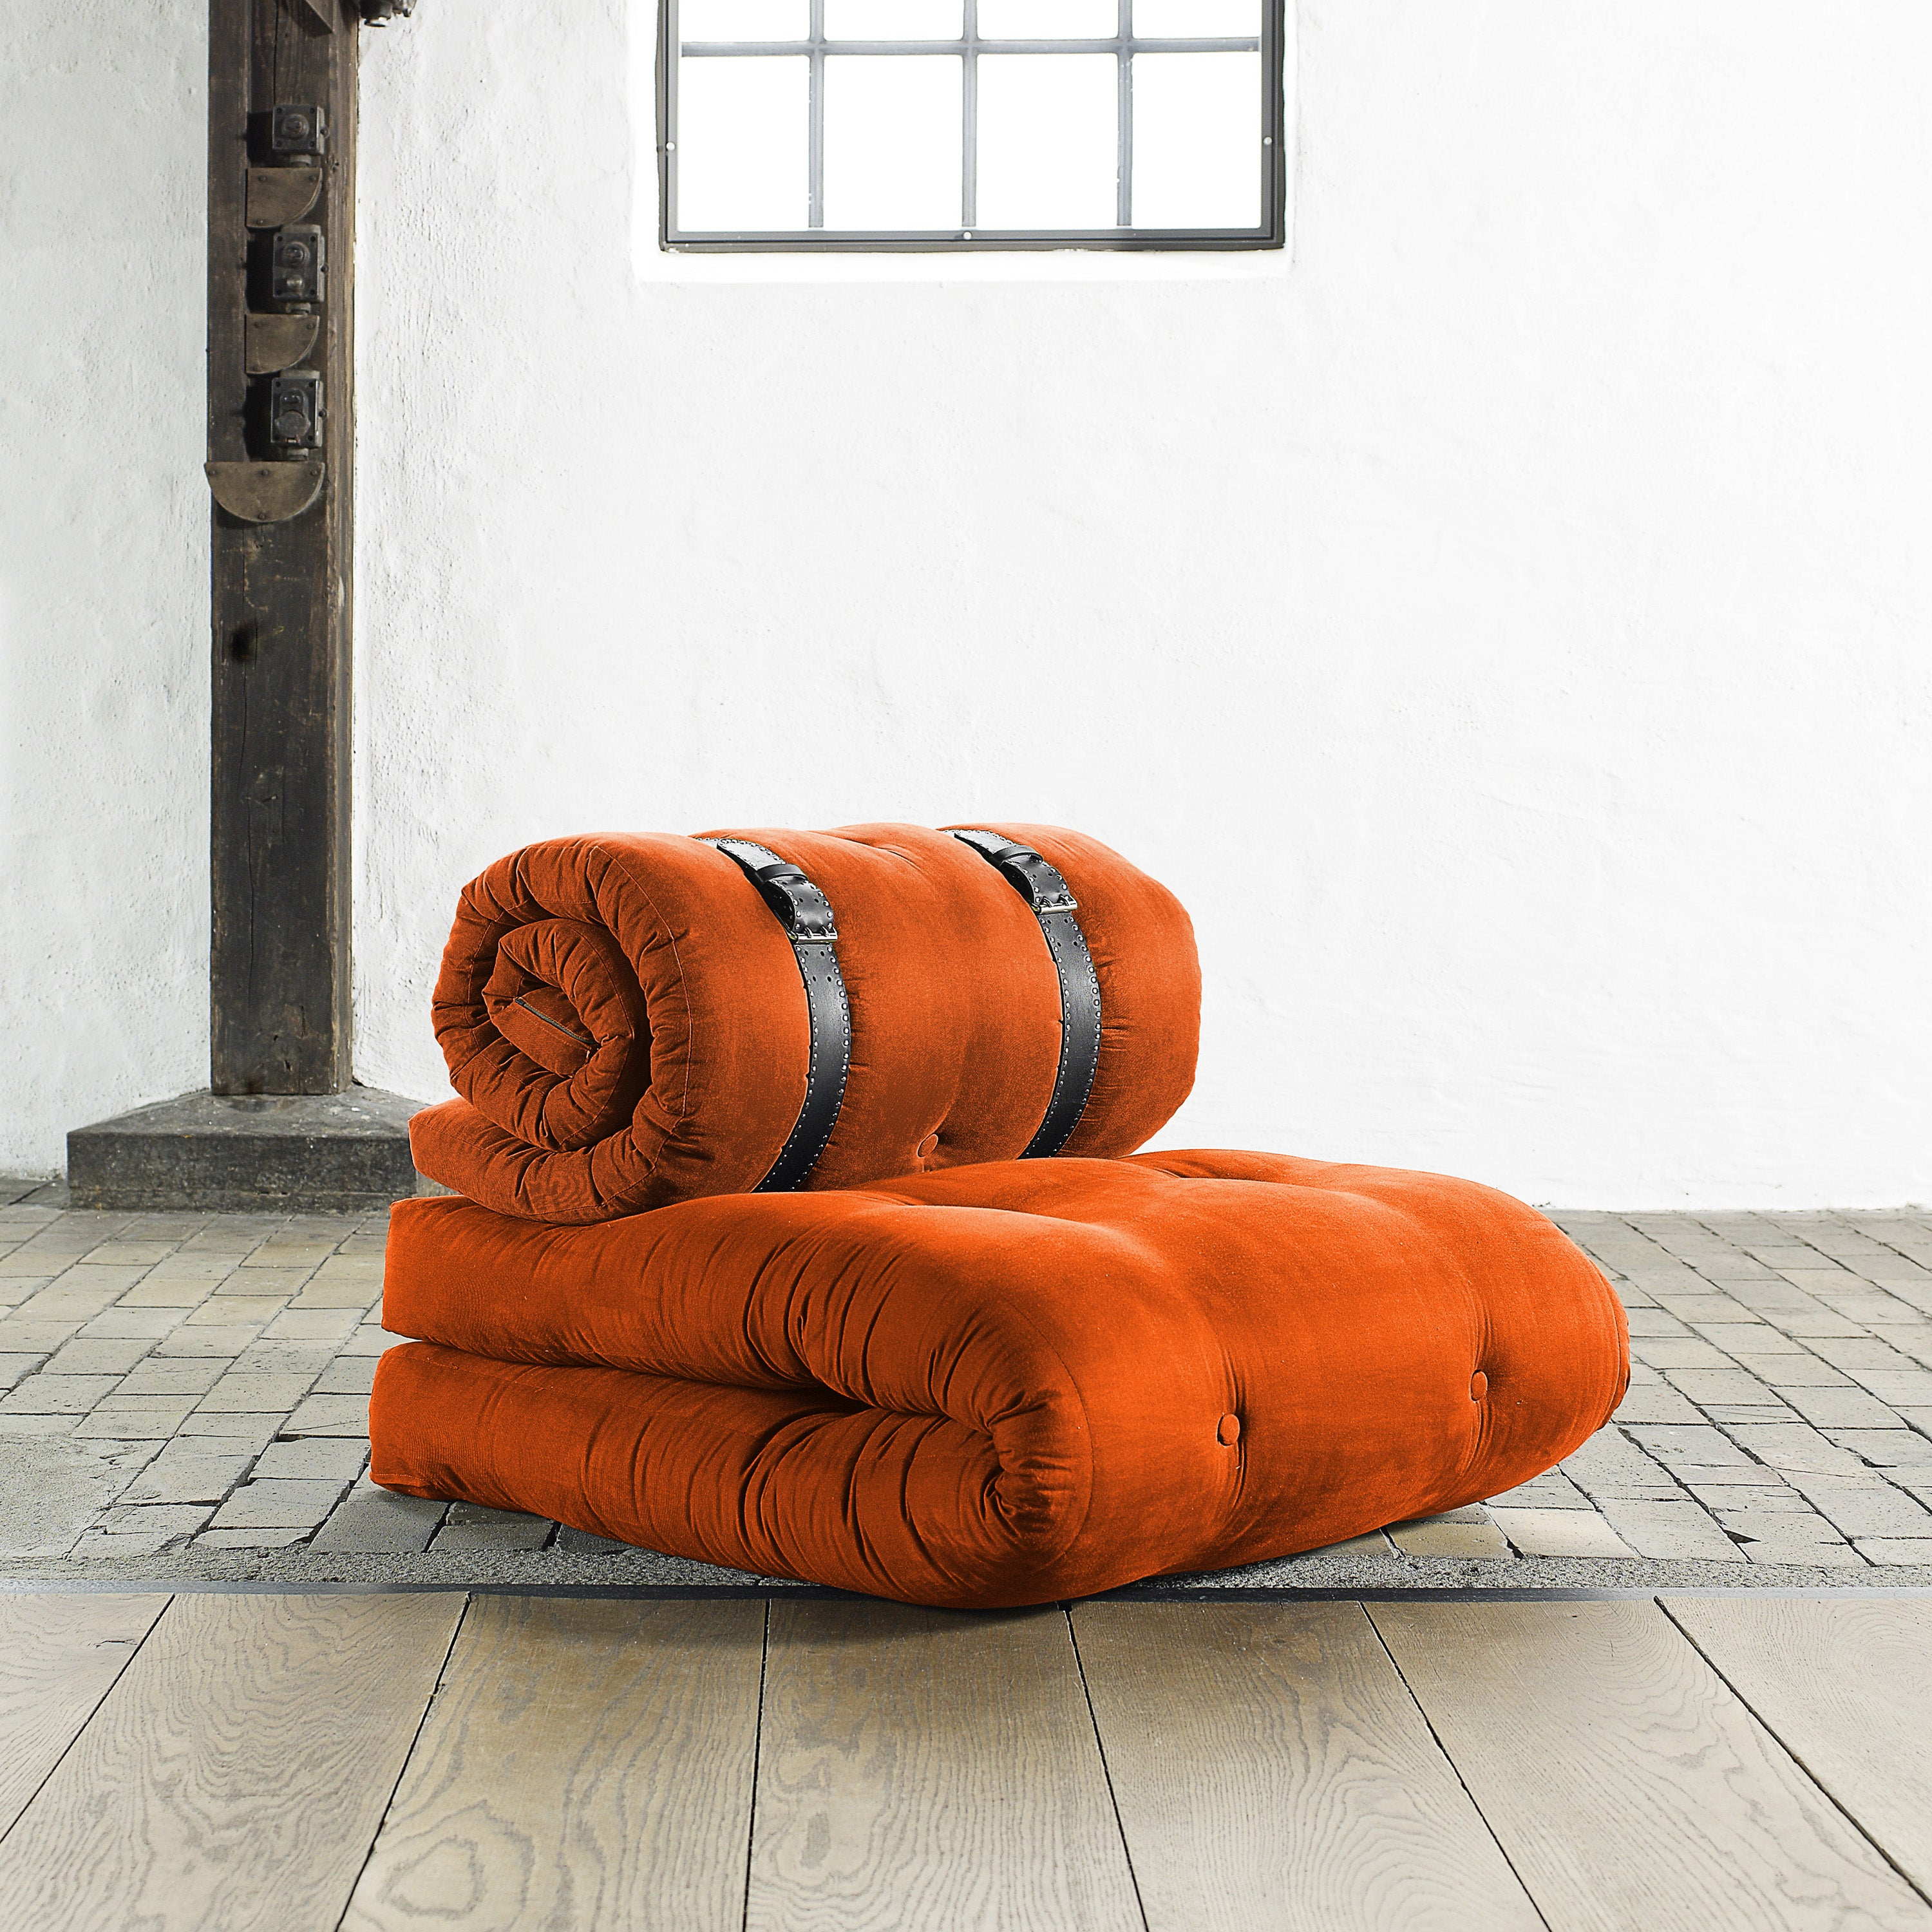 Small Bean Bag Chair likewise Product additionally Product as well Duracell Batteries Aaa 4 Pack besides 1779733. on know more about bean bag chairs